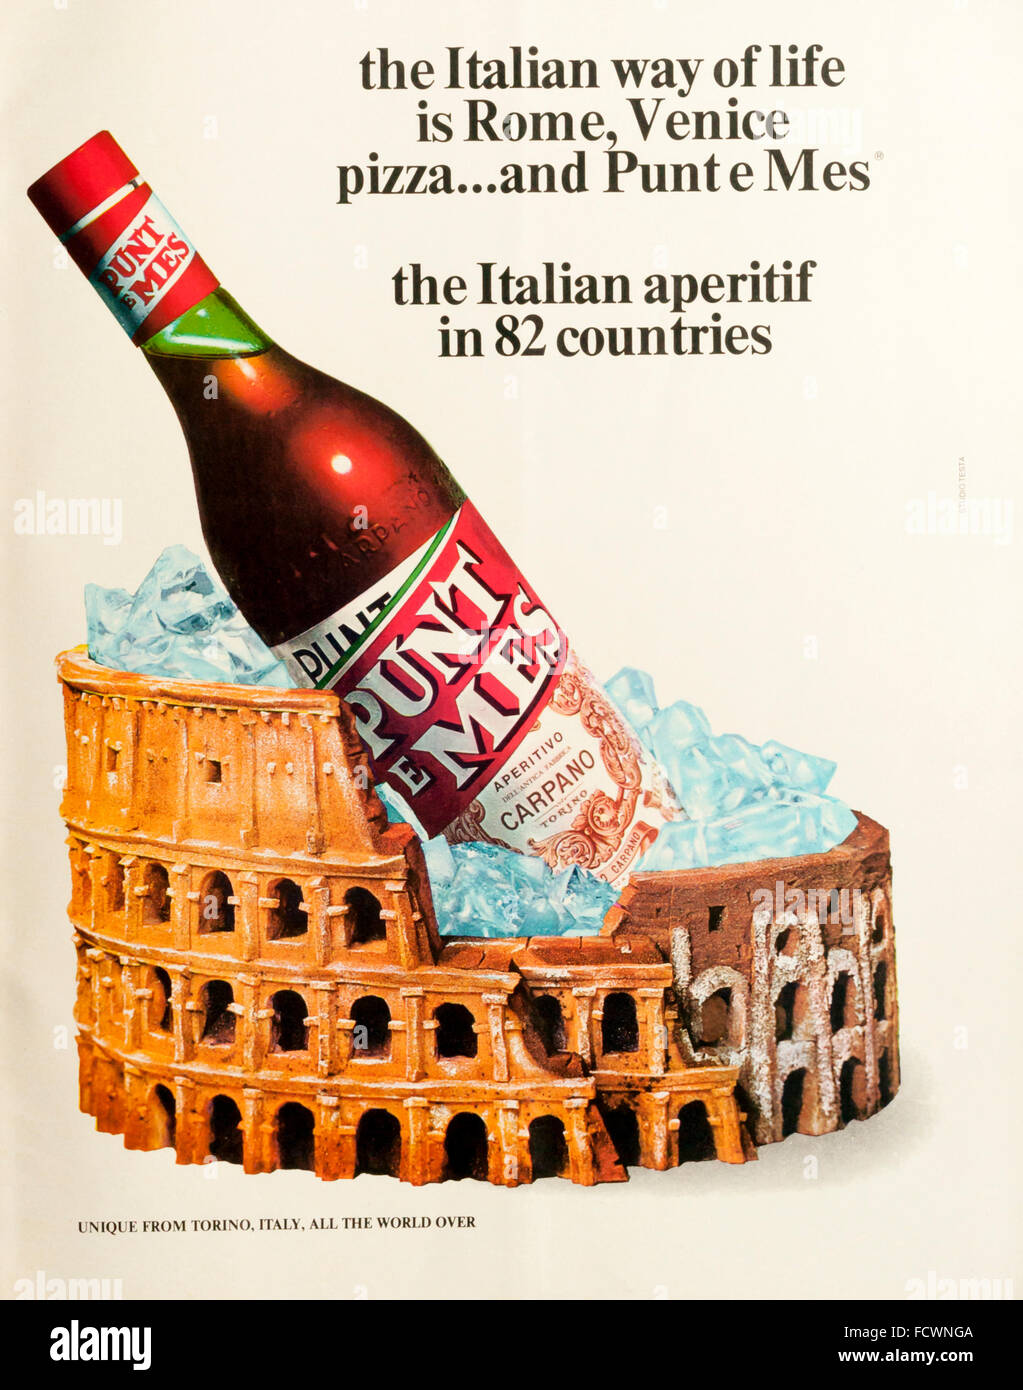 1970s magazine advertisement advertising Punt e Mes, an Italian vermouth. - Stock Image